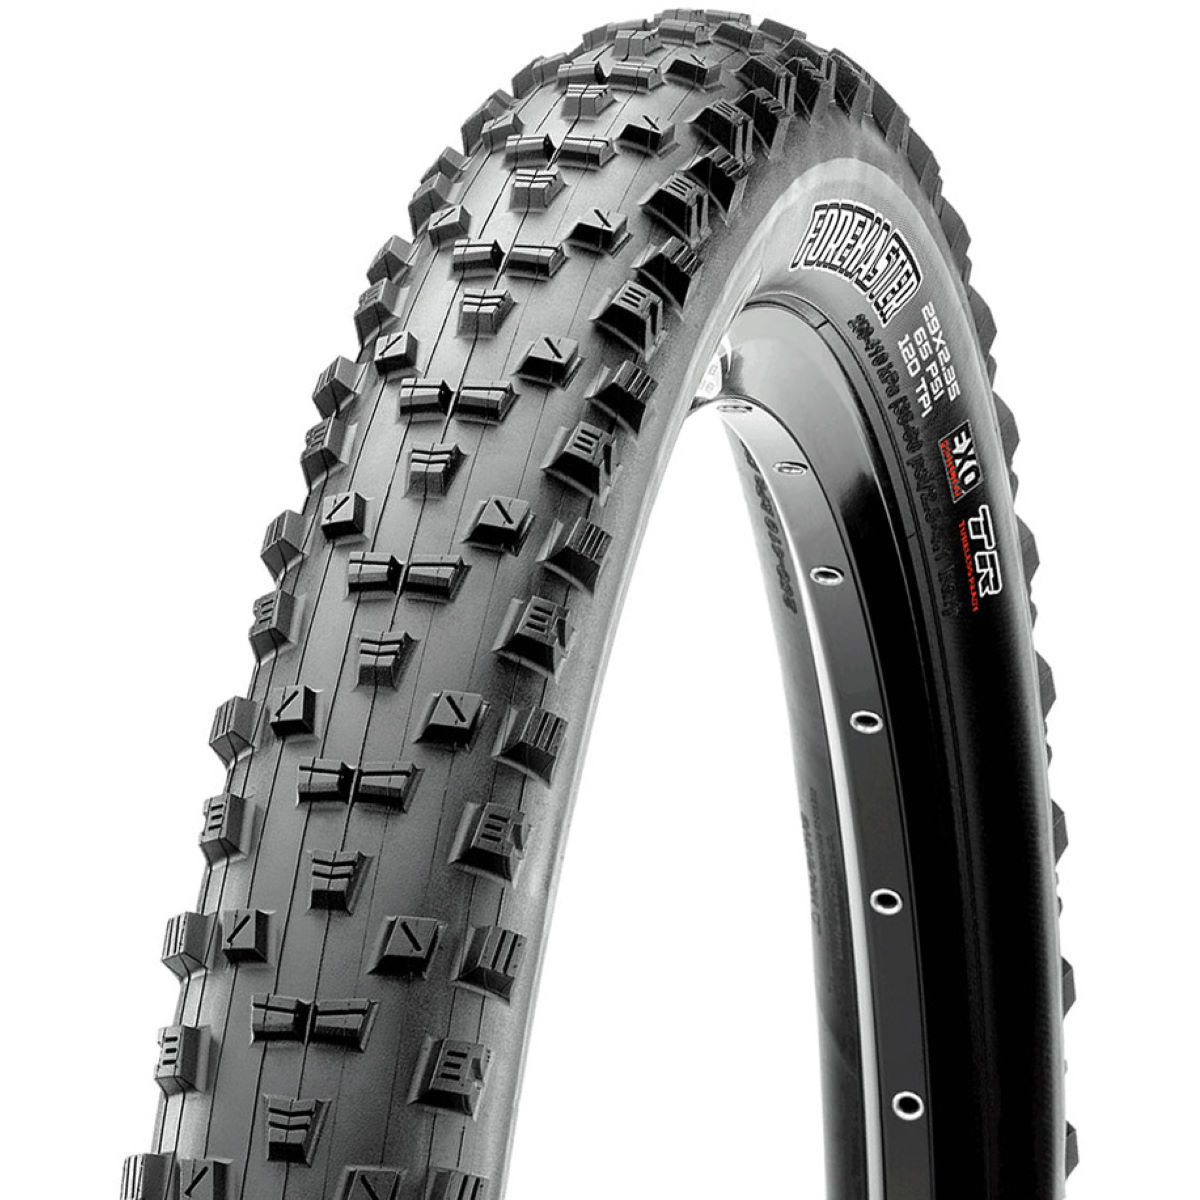 Maxxis Maxxis Forekaster MTB Tyre - TR - EXO   Tyres